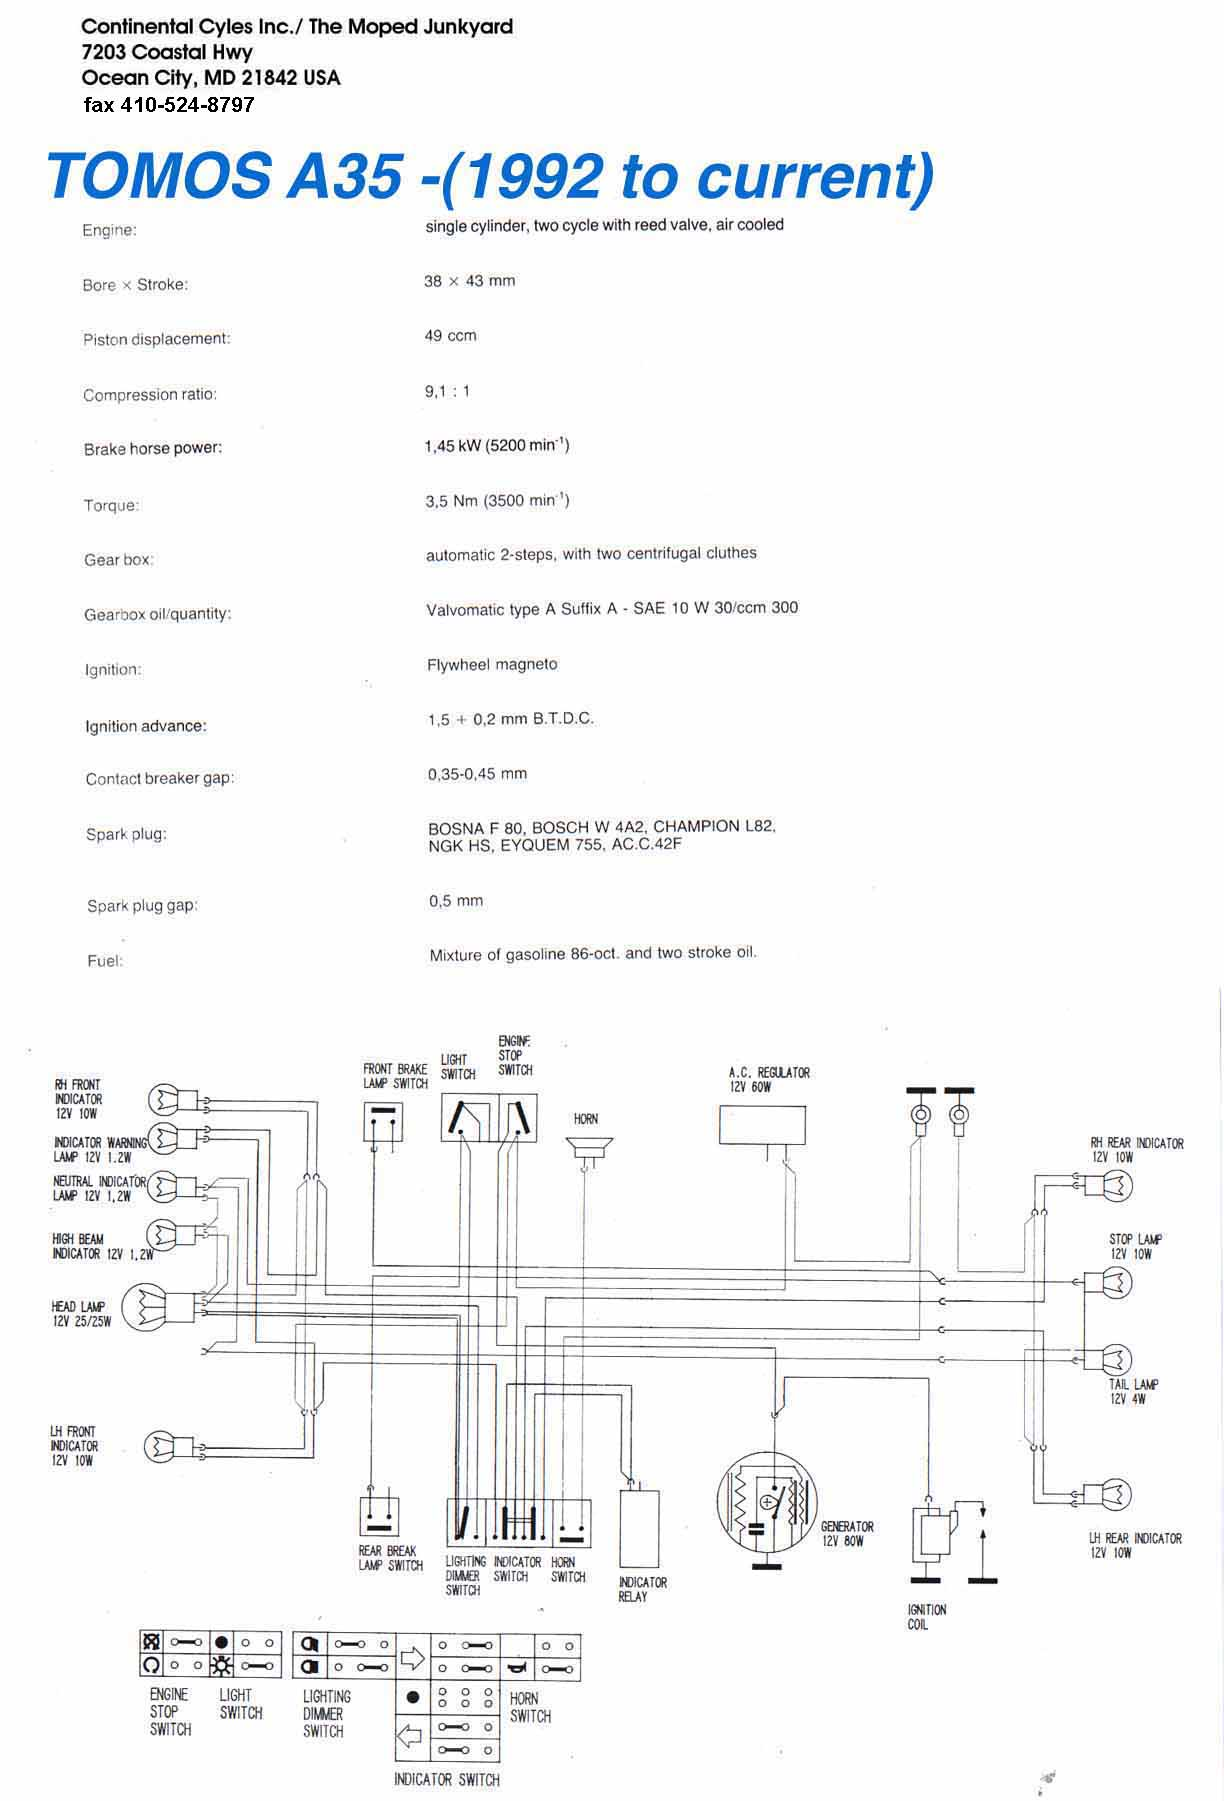 a35 wiring diagram a35 printable wiring diagram database tomos a35 wiring diagram asco solenoid valve wiring diagram source